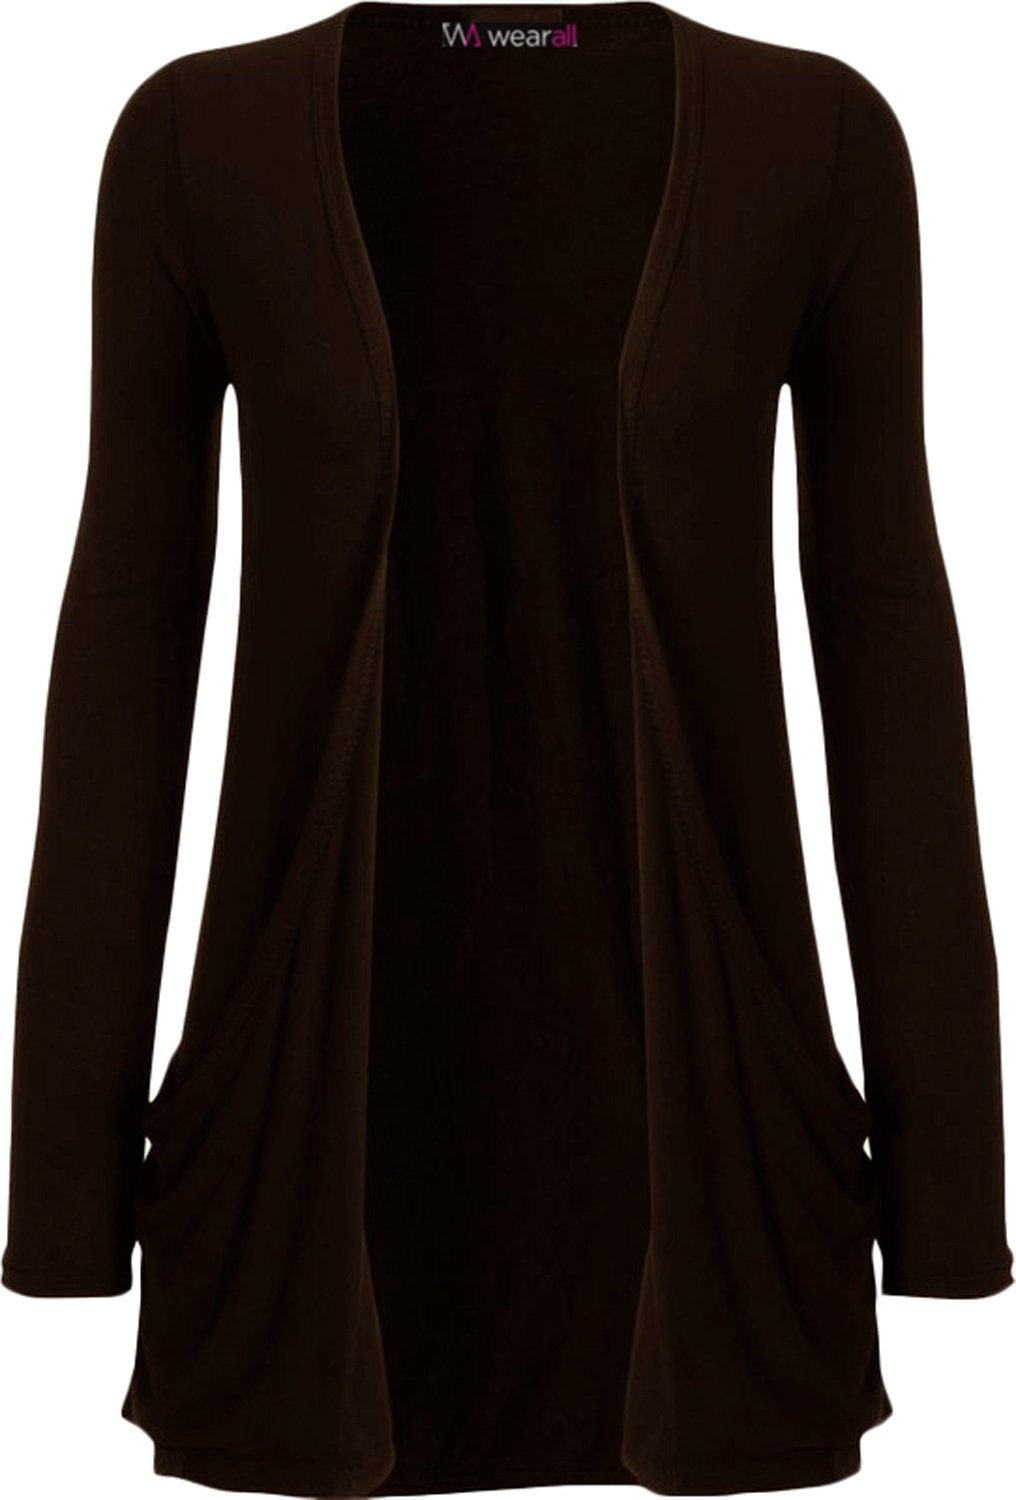 WearAll - Ladies Long Sleeve Pocket Cardigan Womens Top Sizes 8-22 sc